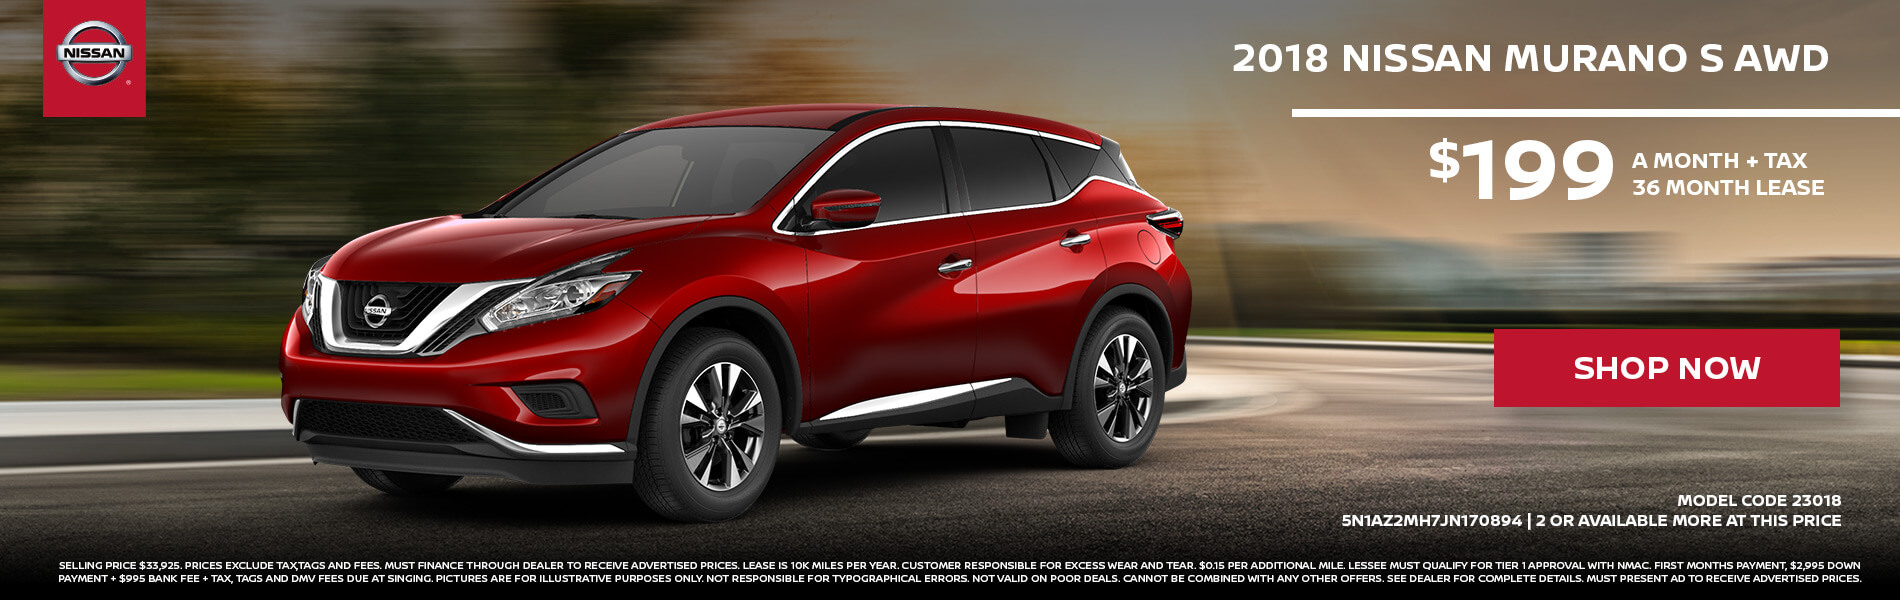 Nissan Murano $199 Lease